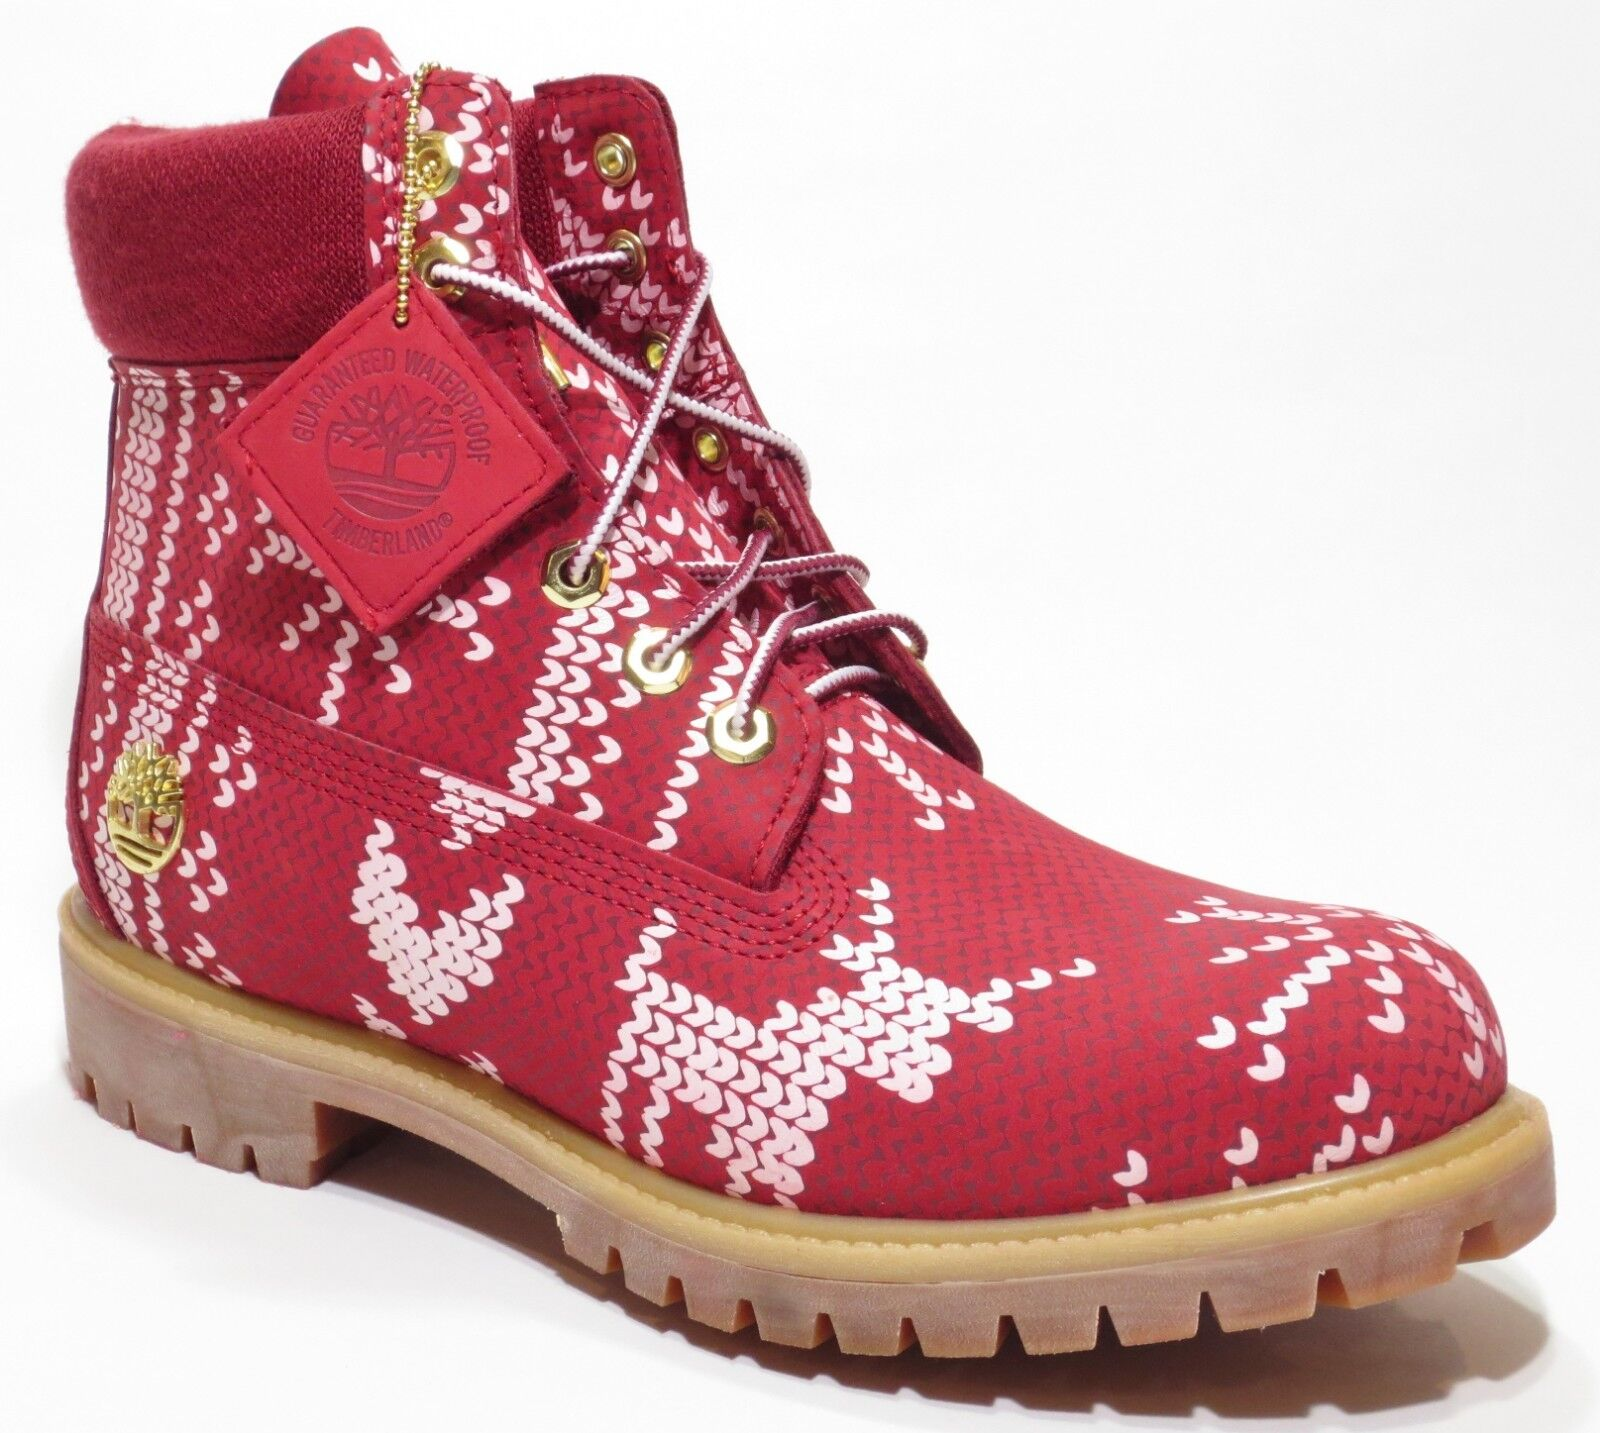 Timberland Men's Red Limited Holiday Edition Ugly Sweater Waterproof Boots A1U6K